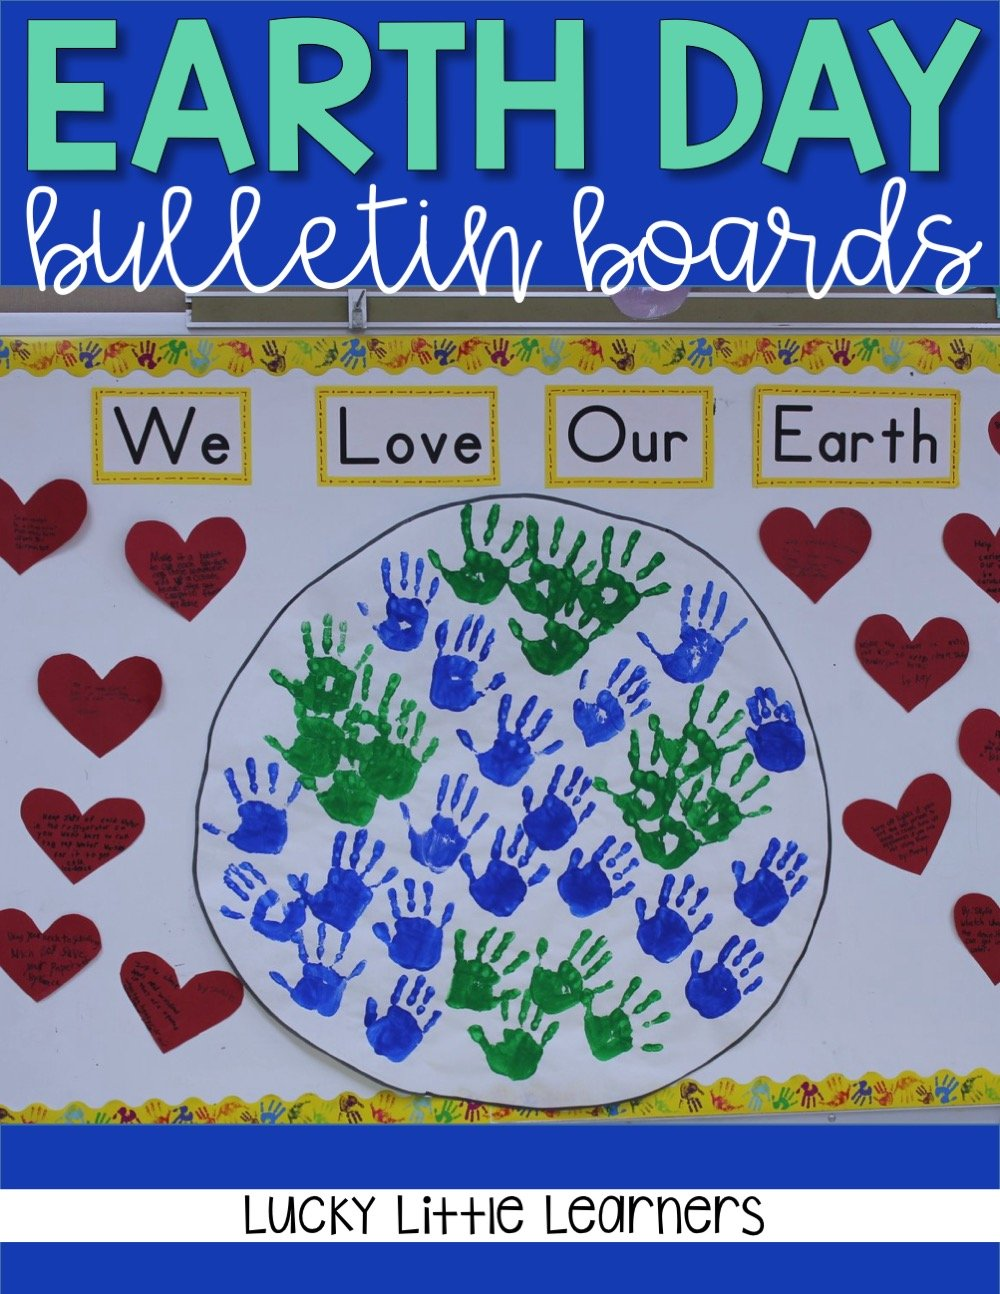 Do you need some Earth day crafts for kids? This post is packed full of ideas! Earth Day activities, Earth Day bulletin boards, Earth Day freebies, Earth Day videos, & Earth Day books!